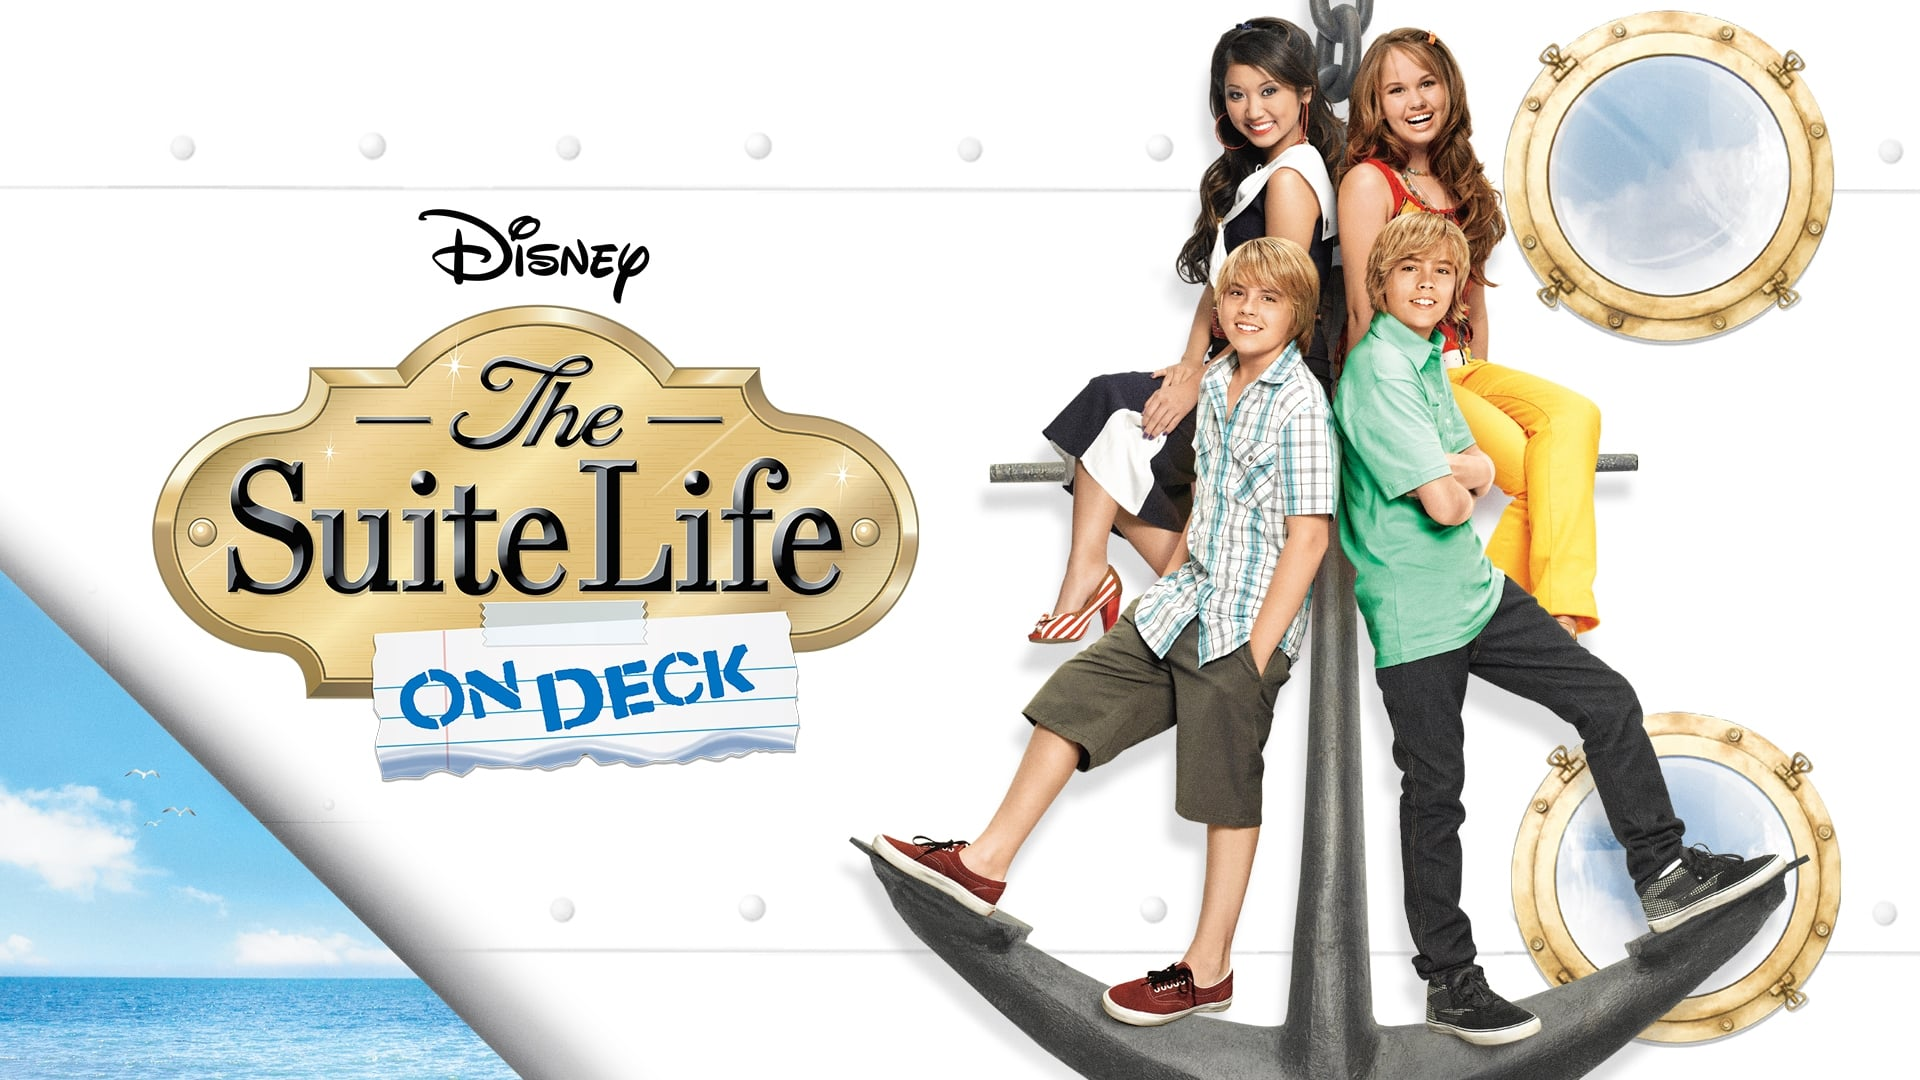 The Suite Life on Deck - Season 0 Episode 1 : Wizards on Deck with Hannah Montana